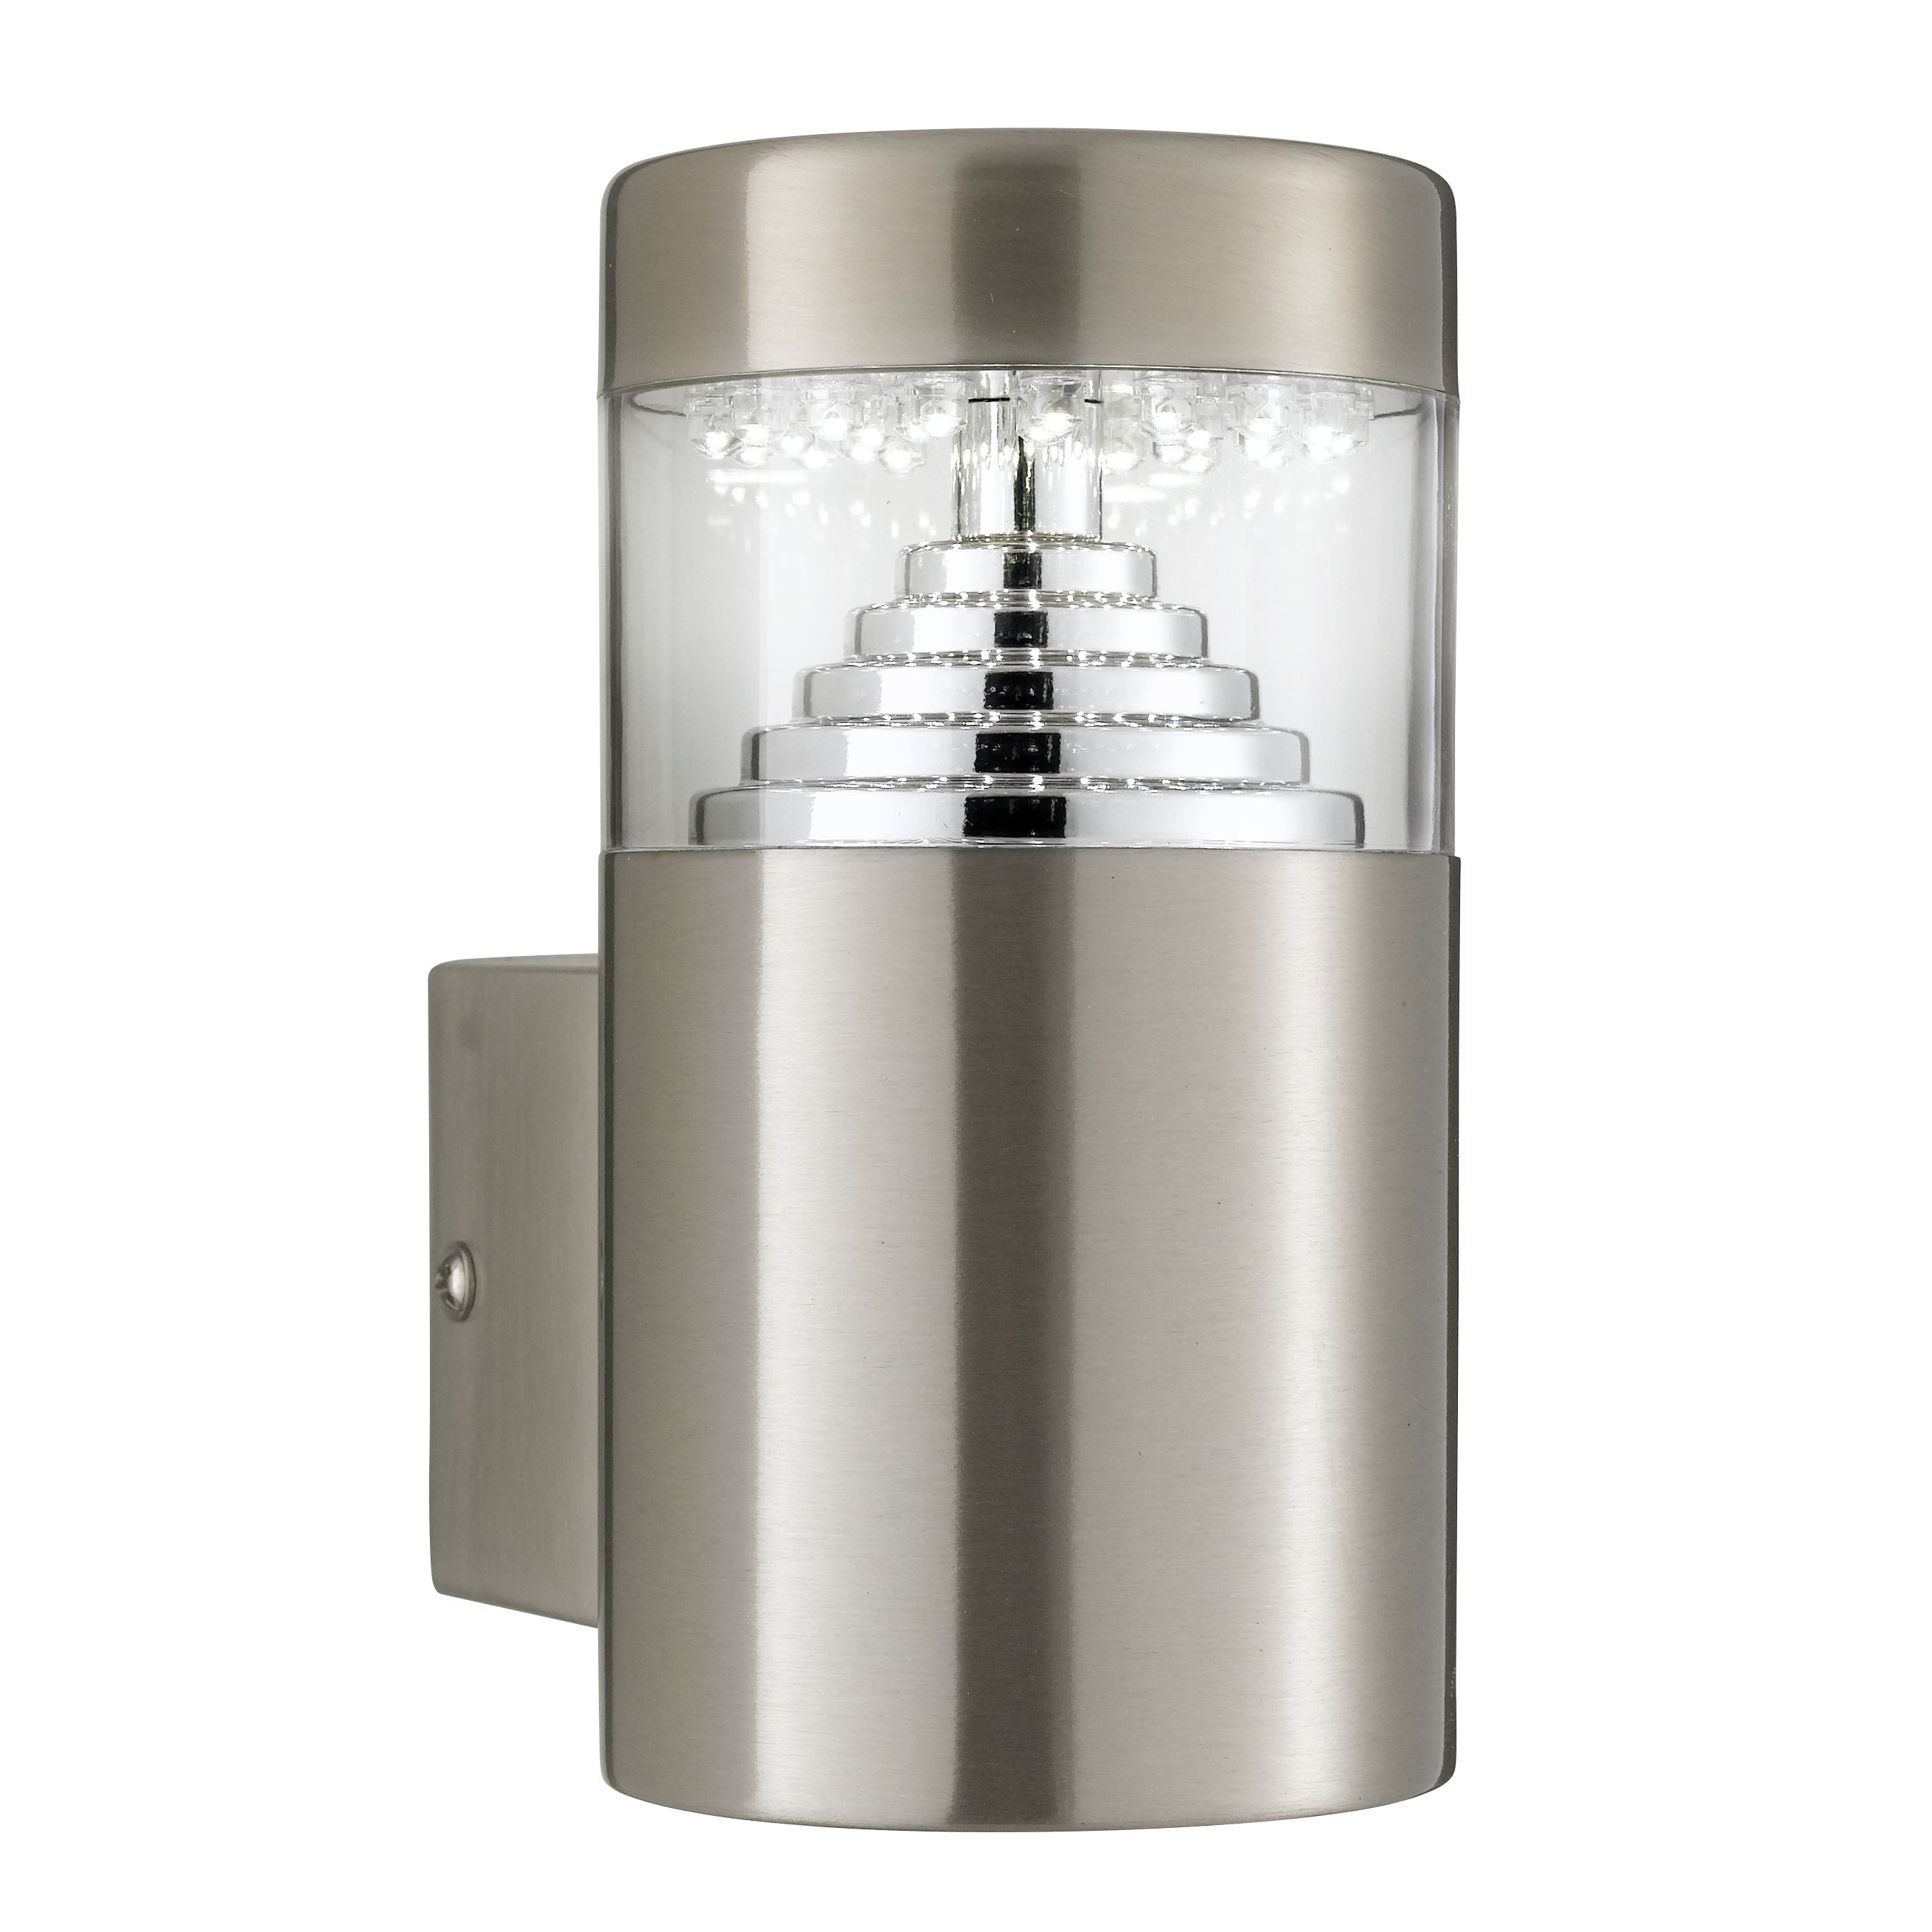 Stainless Steel Ip44 30 Led Outdoor Wall Light With Clear Polycarbonate Diffuser